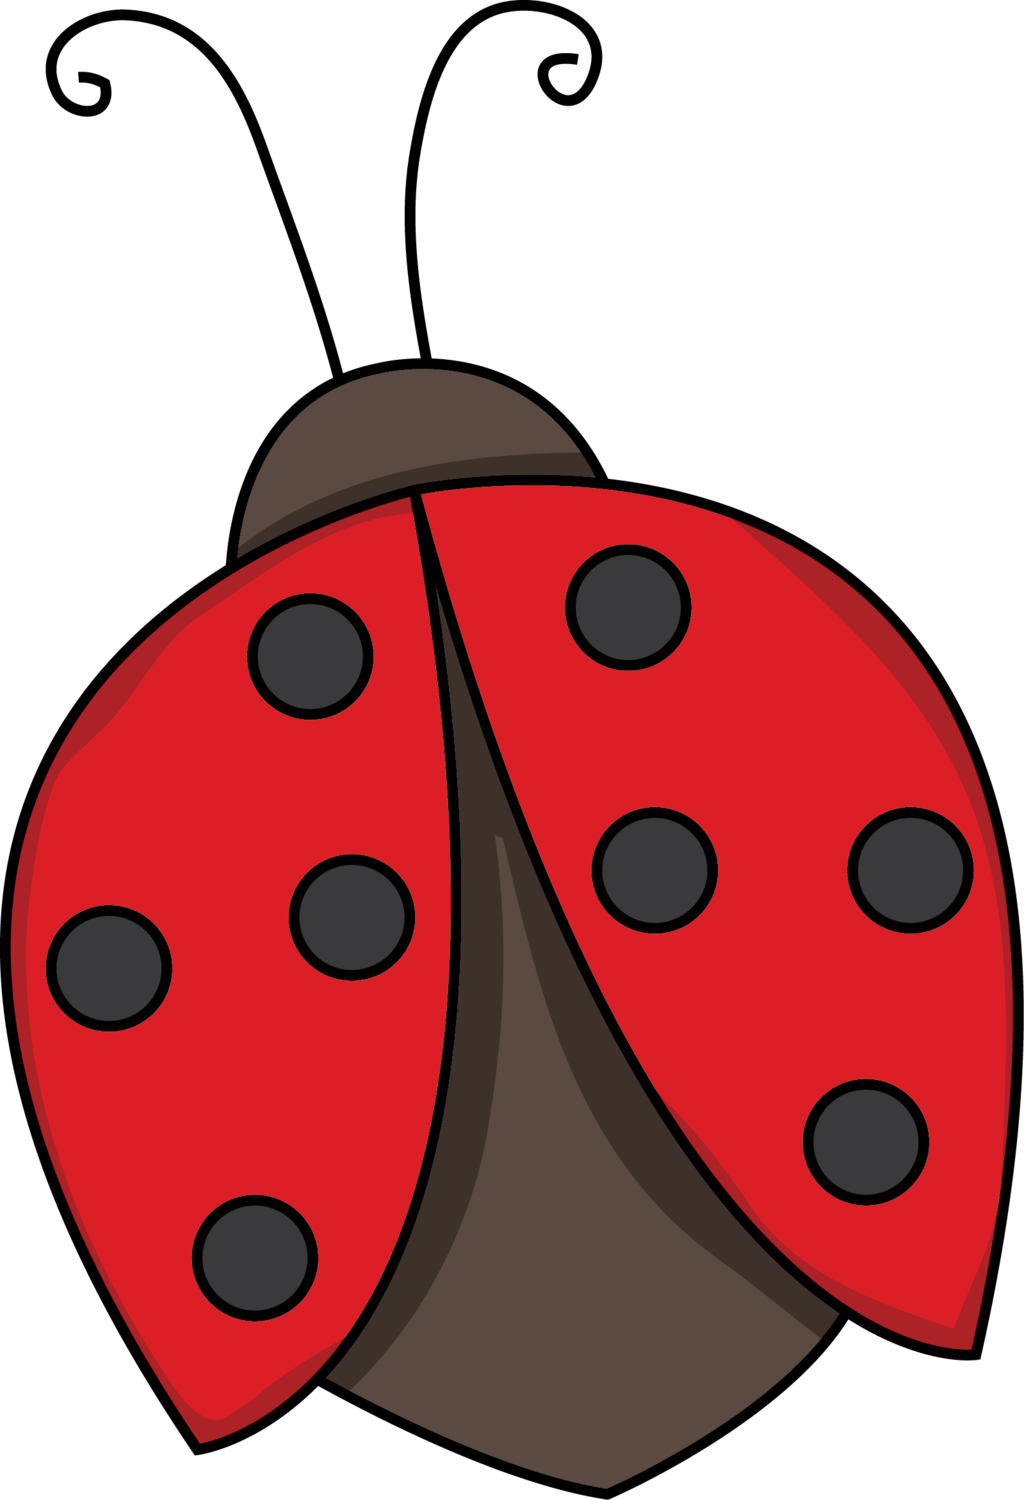 Ladybugs clipart free download on ijcnlp cliparts.